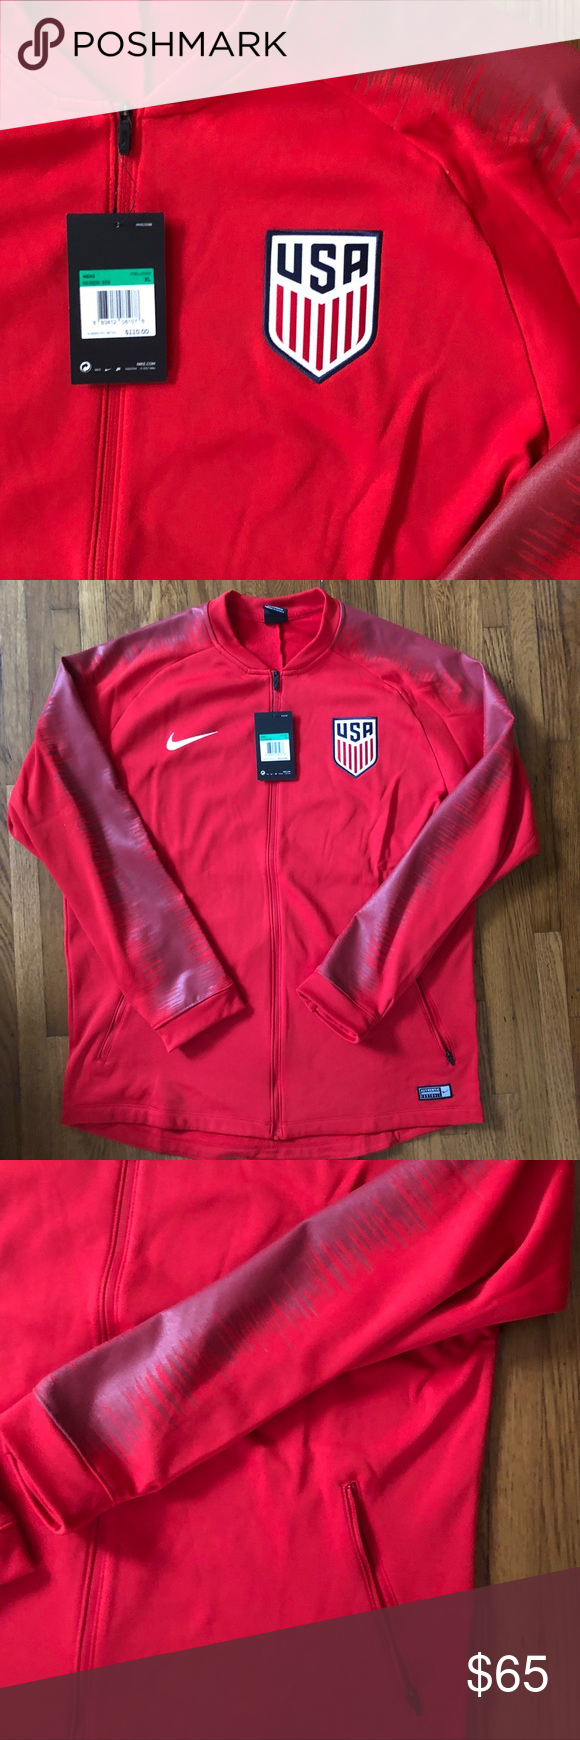 382b1da87 Nike Men's 2017 US Soccer Team Track Jacket XL NWT Brand new and a great  deal. Zip up Track Jacket made from Nike's Dri-Fit fabric.